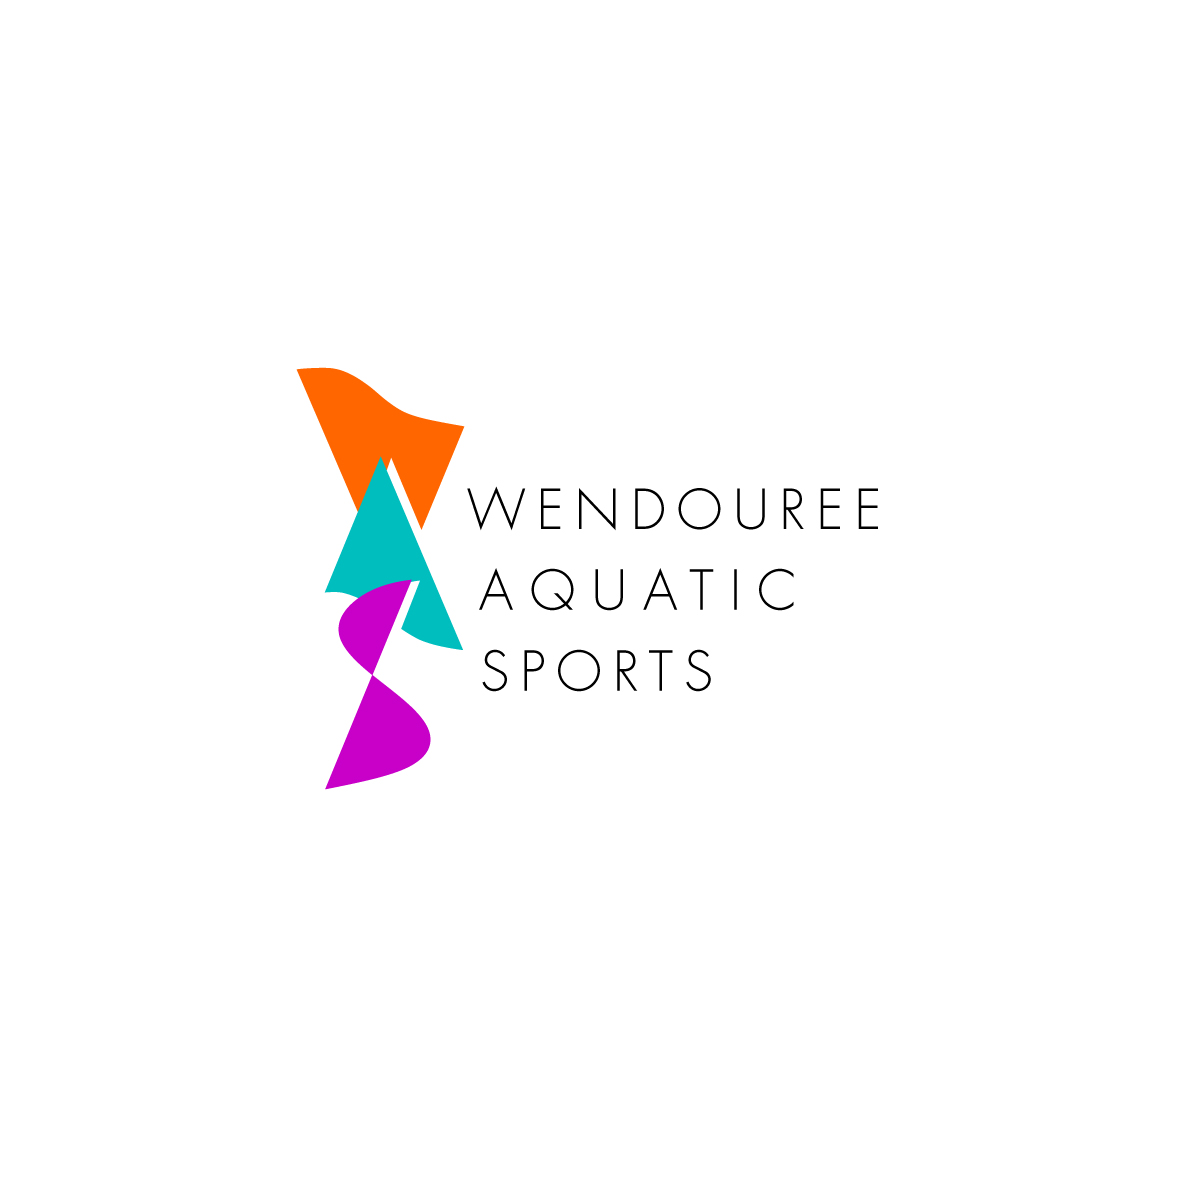 Wendouree Aquatic Sports